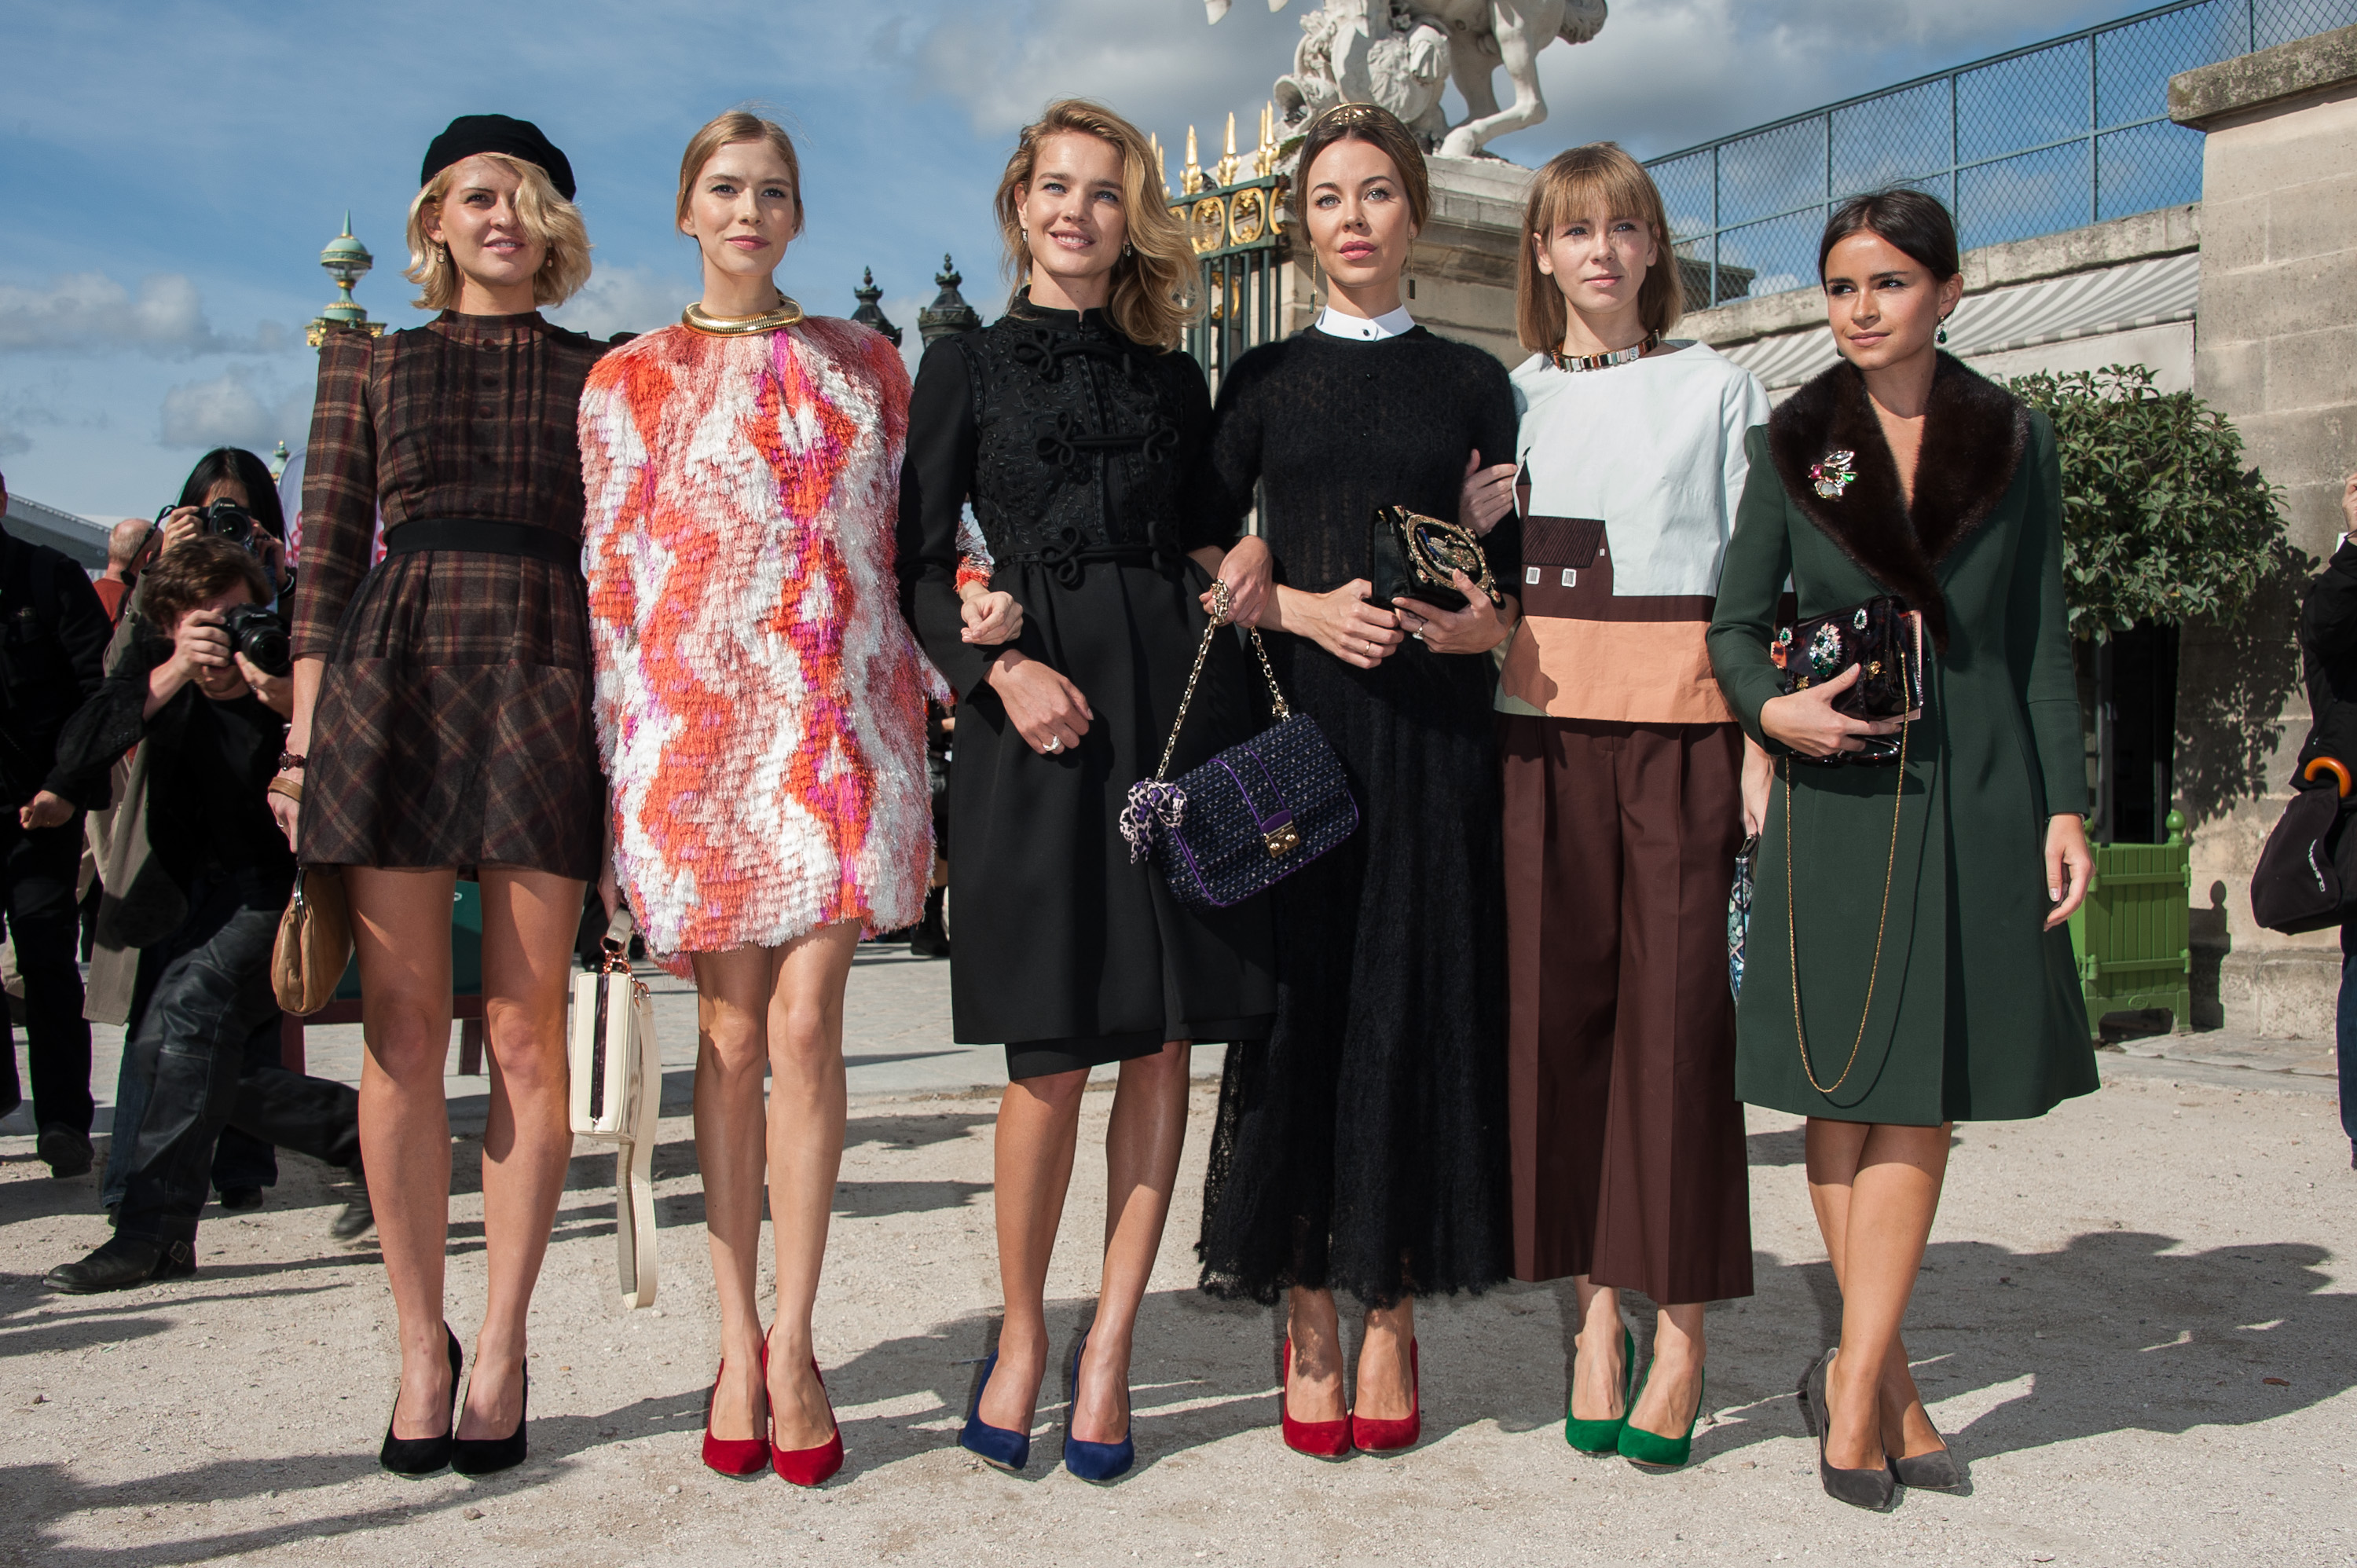 There was just a whole lot of amazing fashion going on outside of the Valentino show — namely from our favorites Natalia Vodianova (middle) and Miroslava Duma (far right).